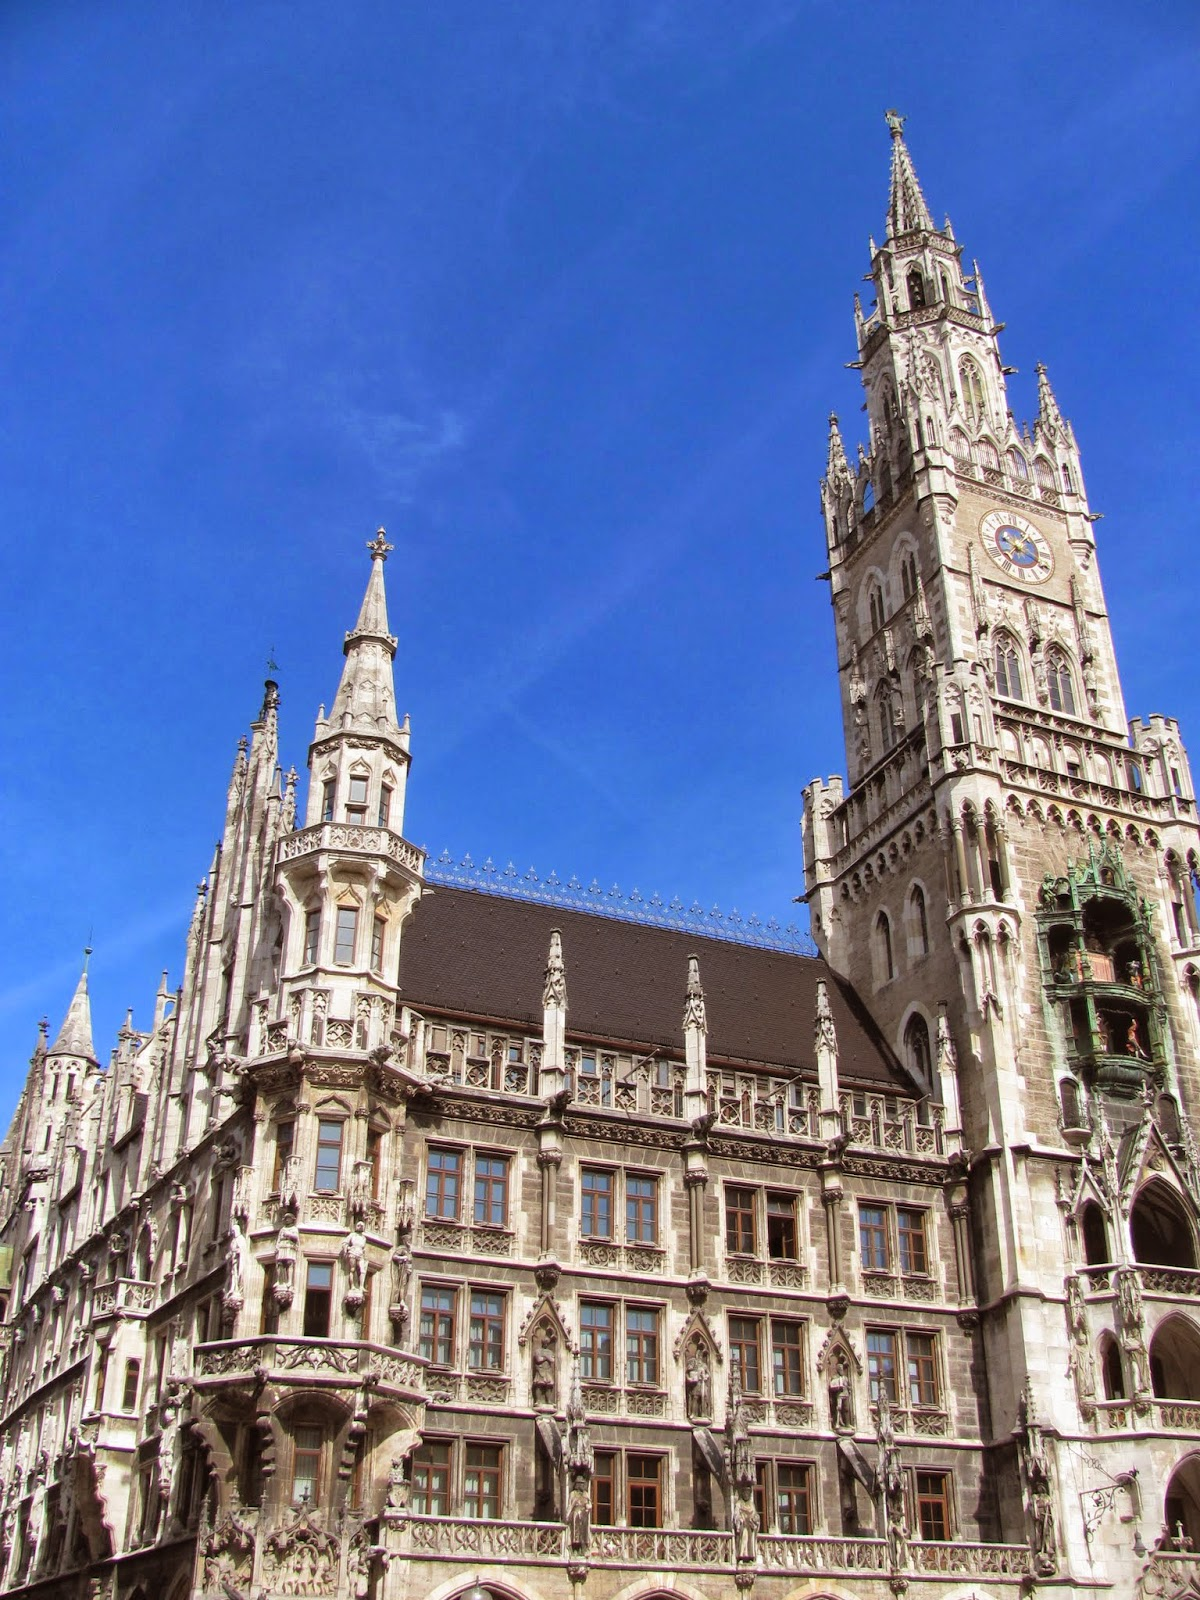 New Town Hall, Marienplatz Munich, Germany